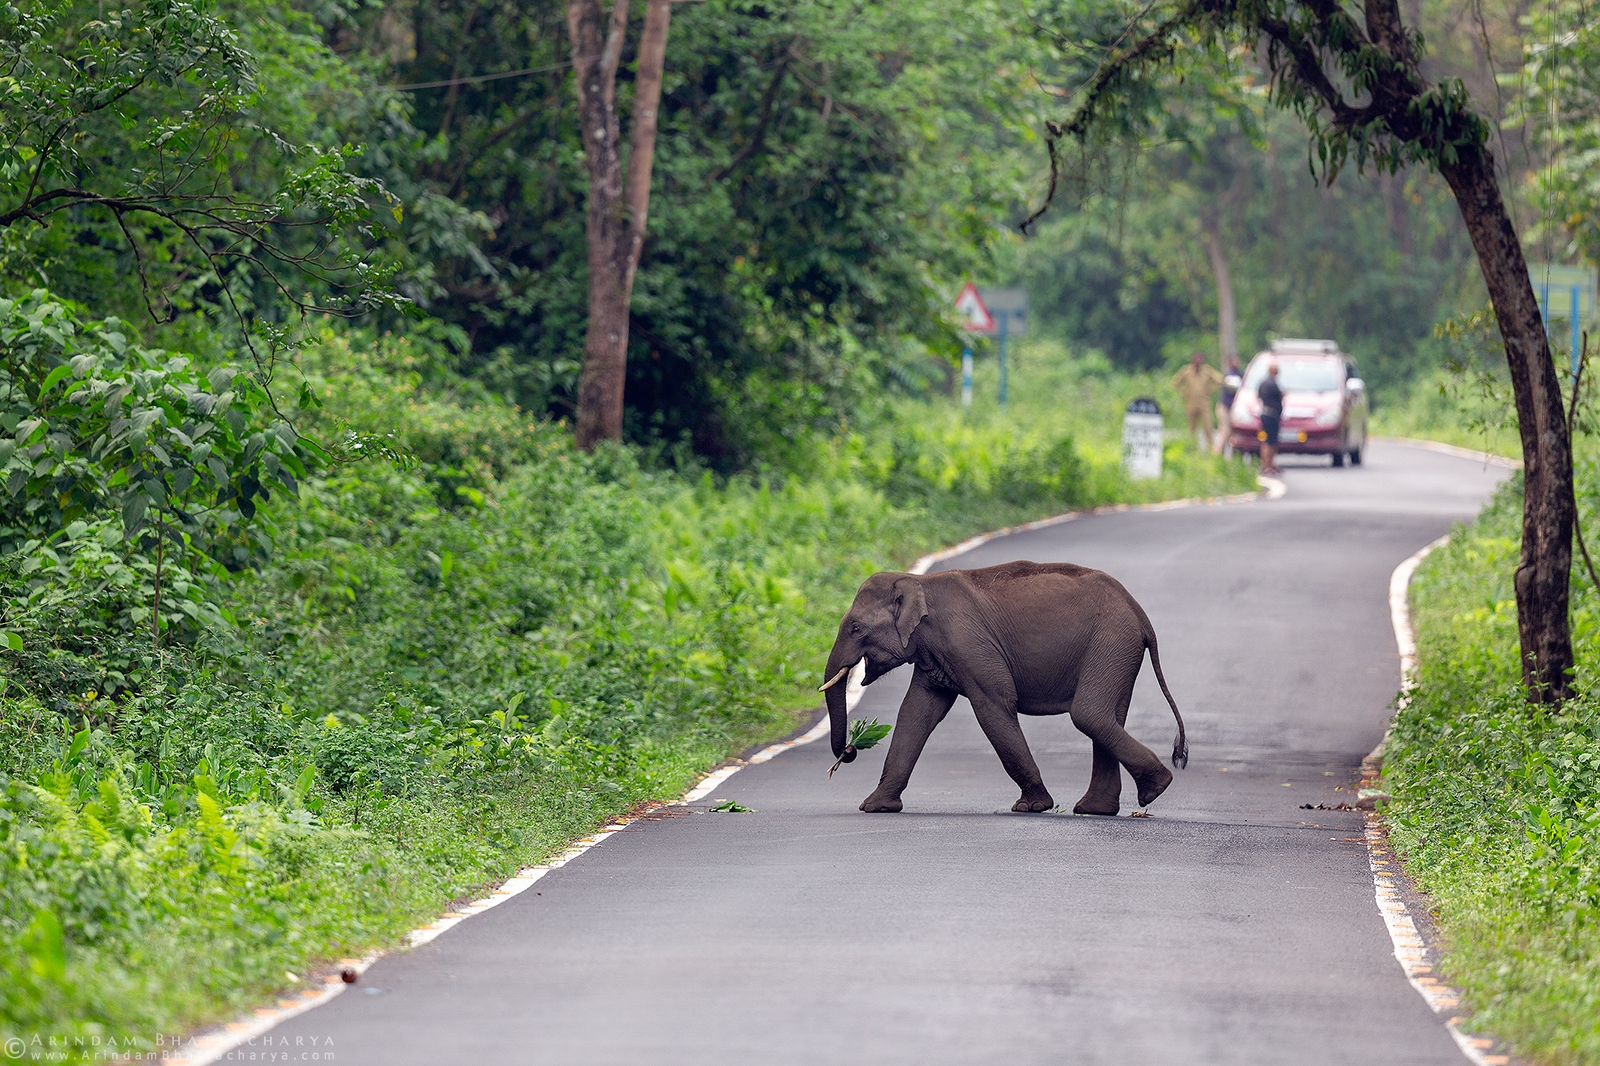 Asian elephant or Asiatic elephant or Elephas maximus crossing road at Gorumara National park West Bengal India Arindam Bhattacharya